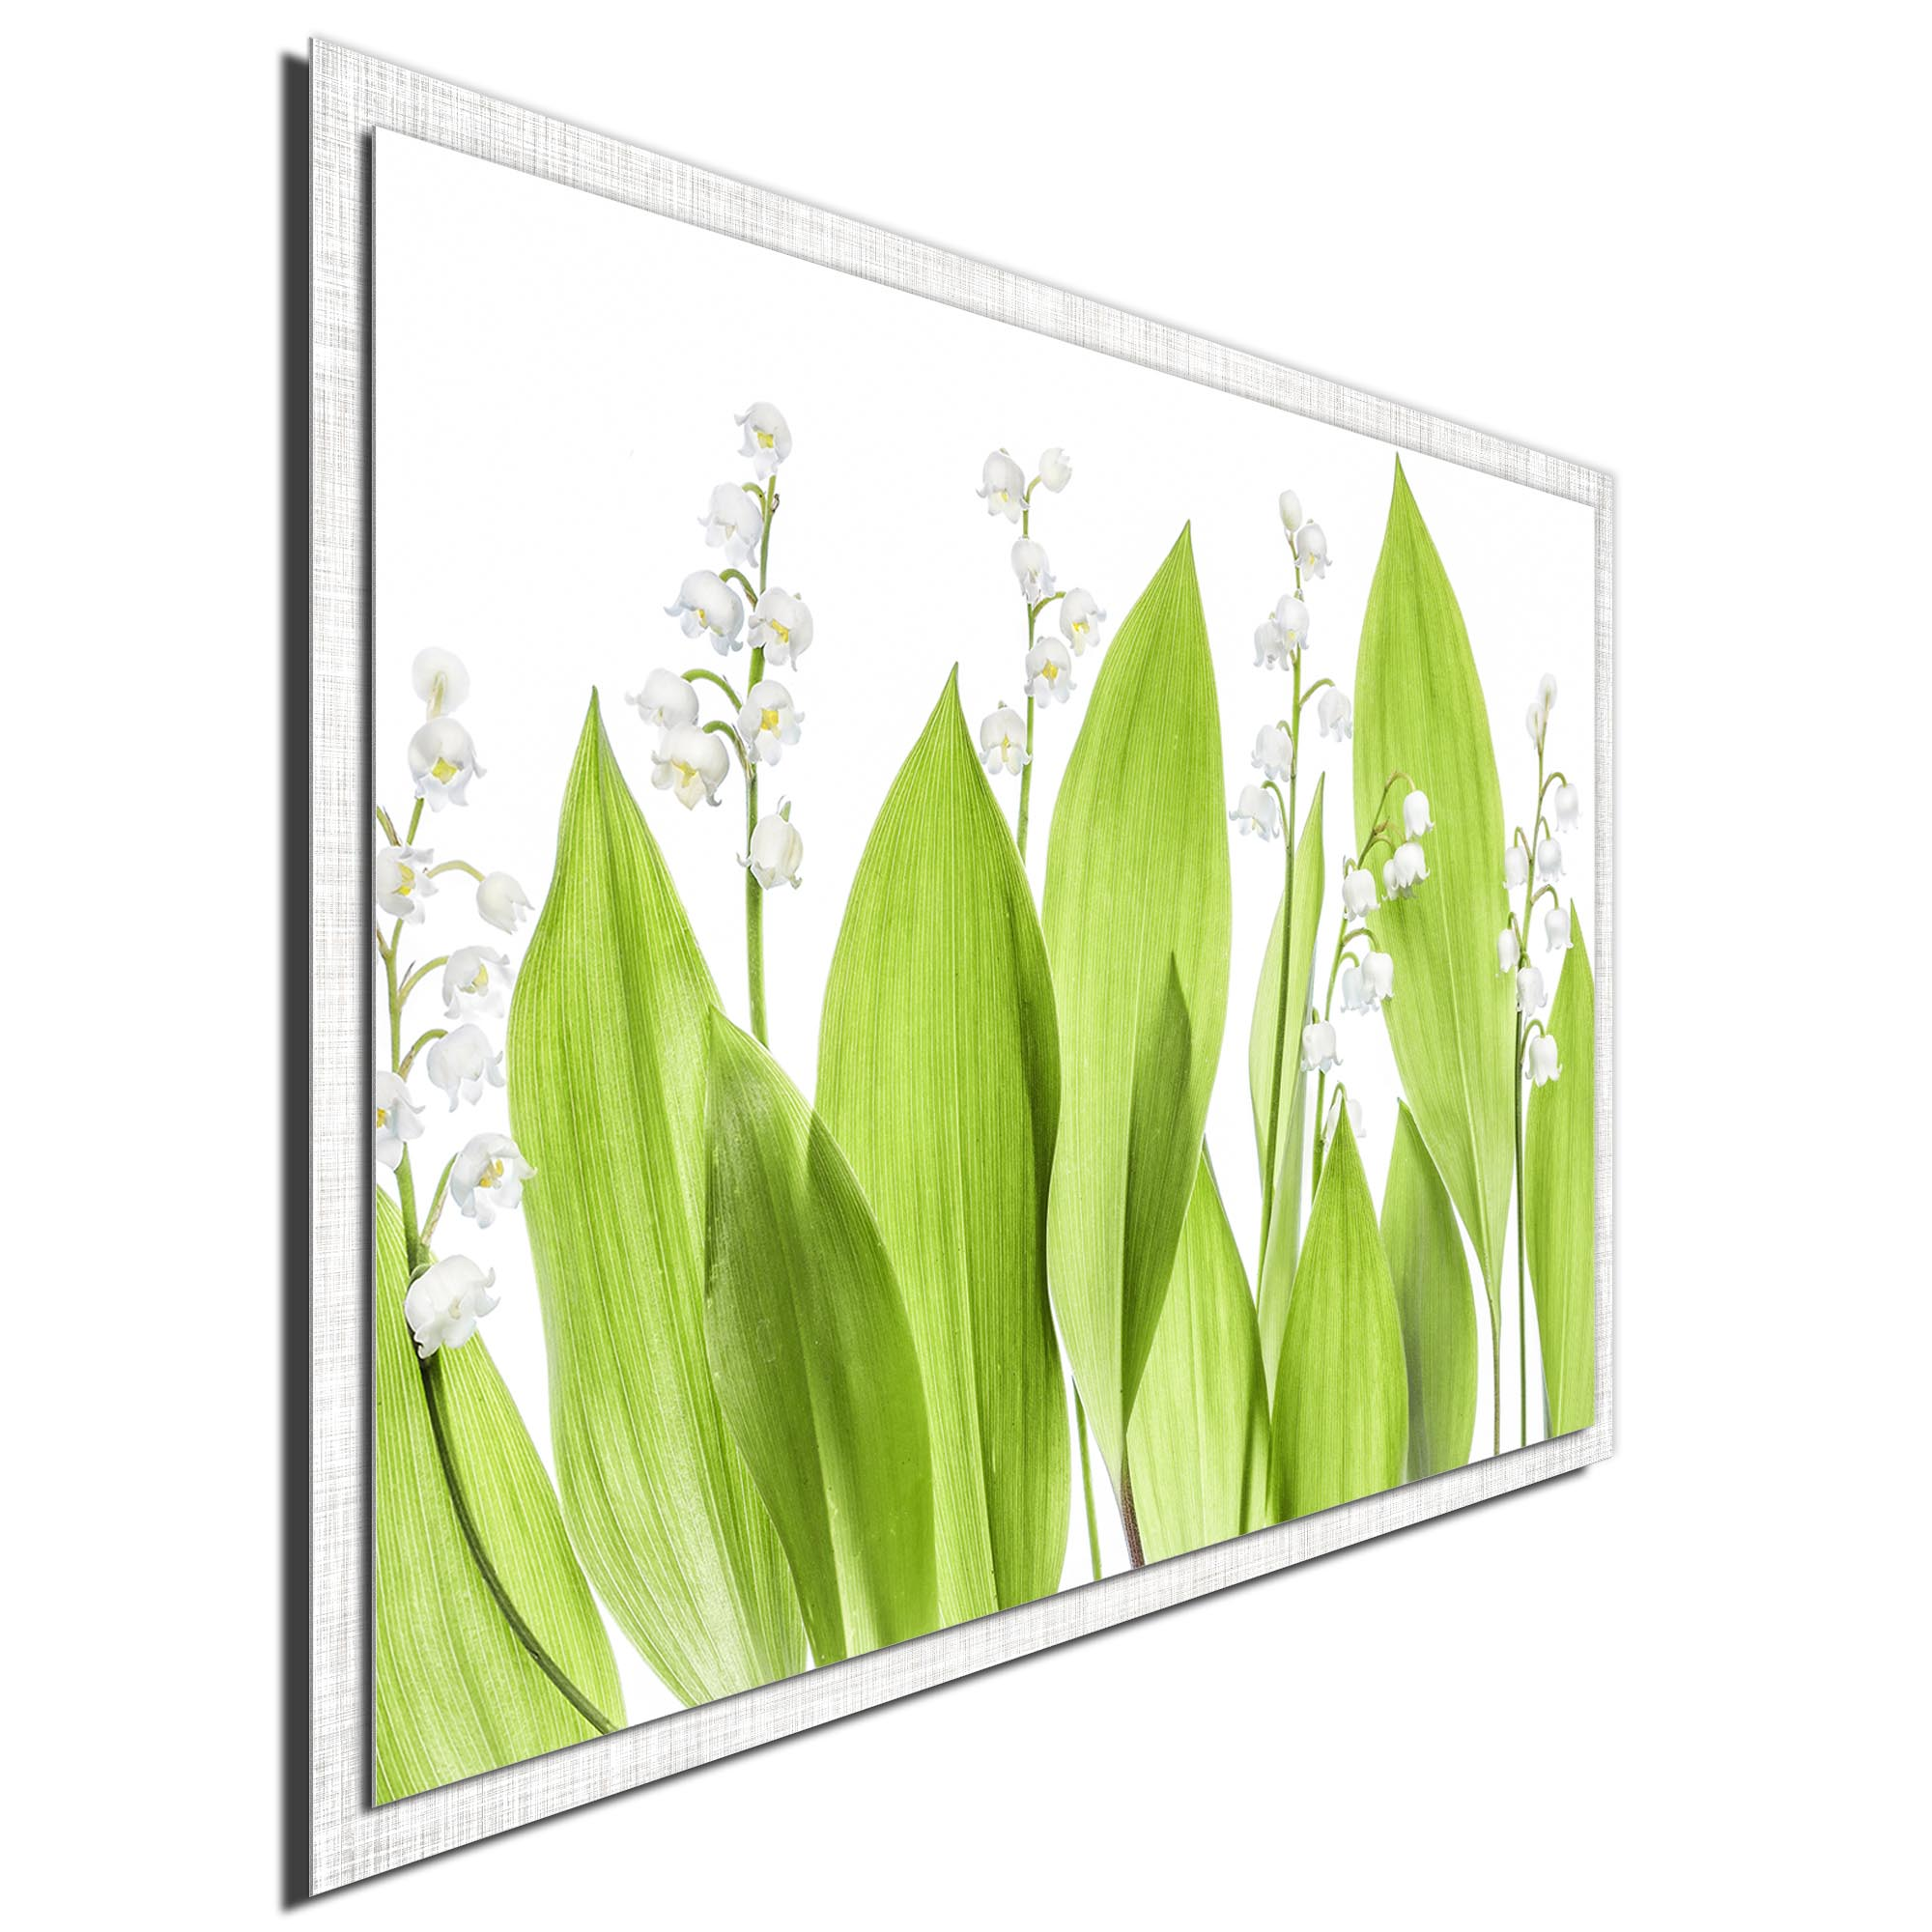 Lily of the Valley by Mandy Disher - Modern Farmhouse Floral on Metal - Image 2